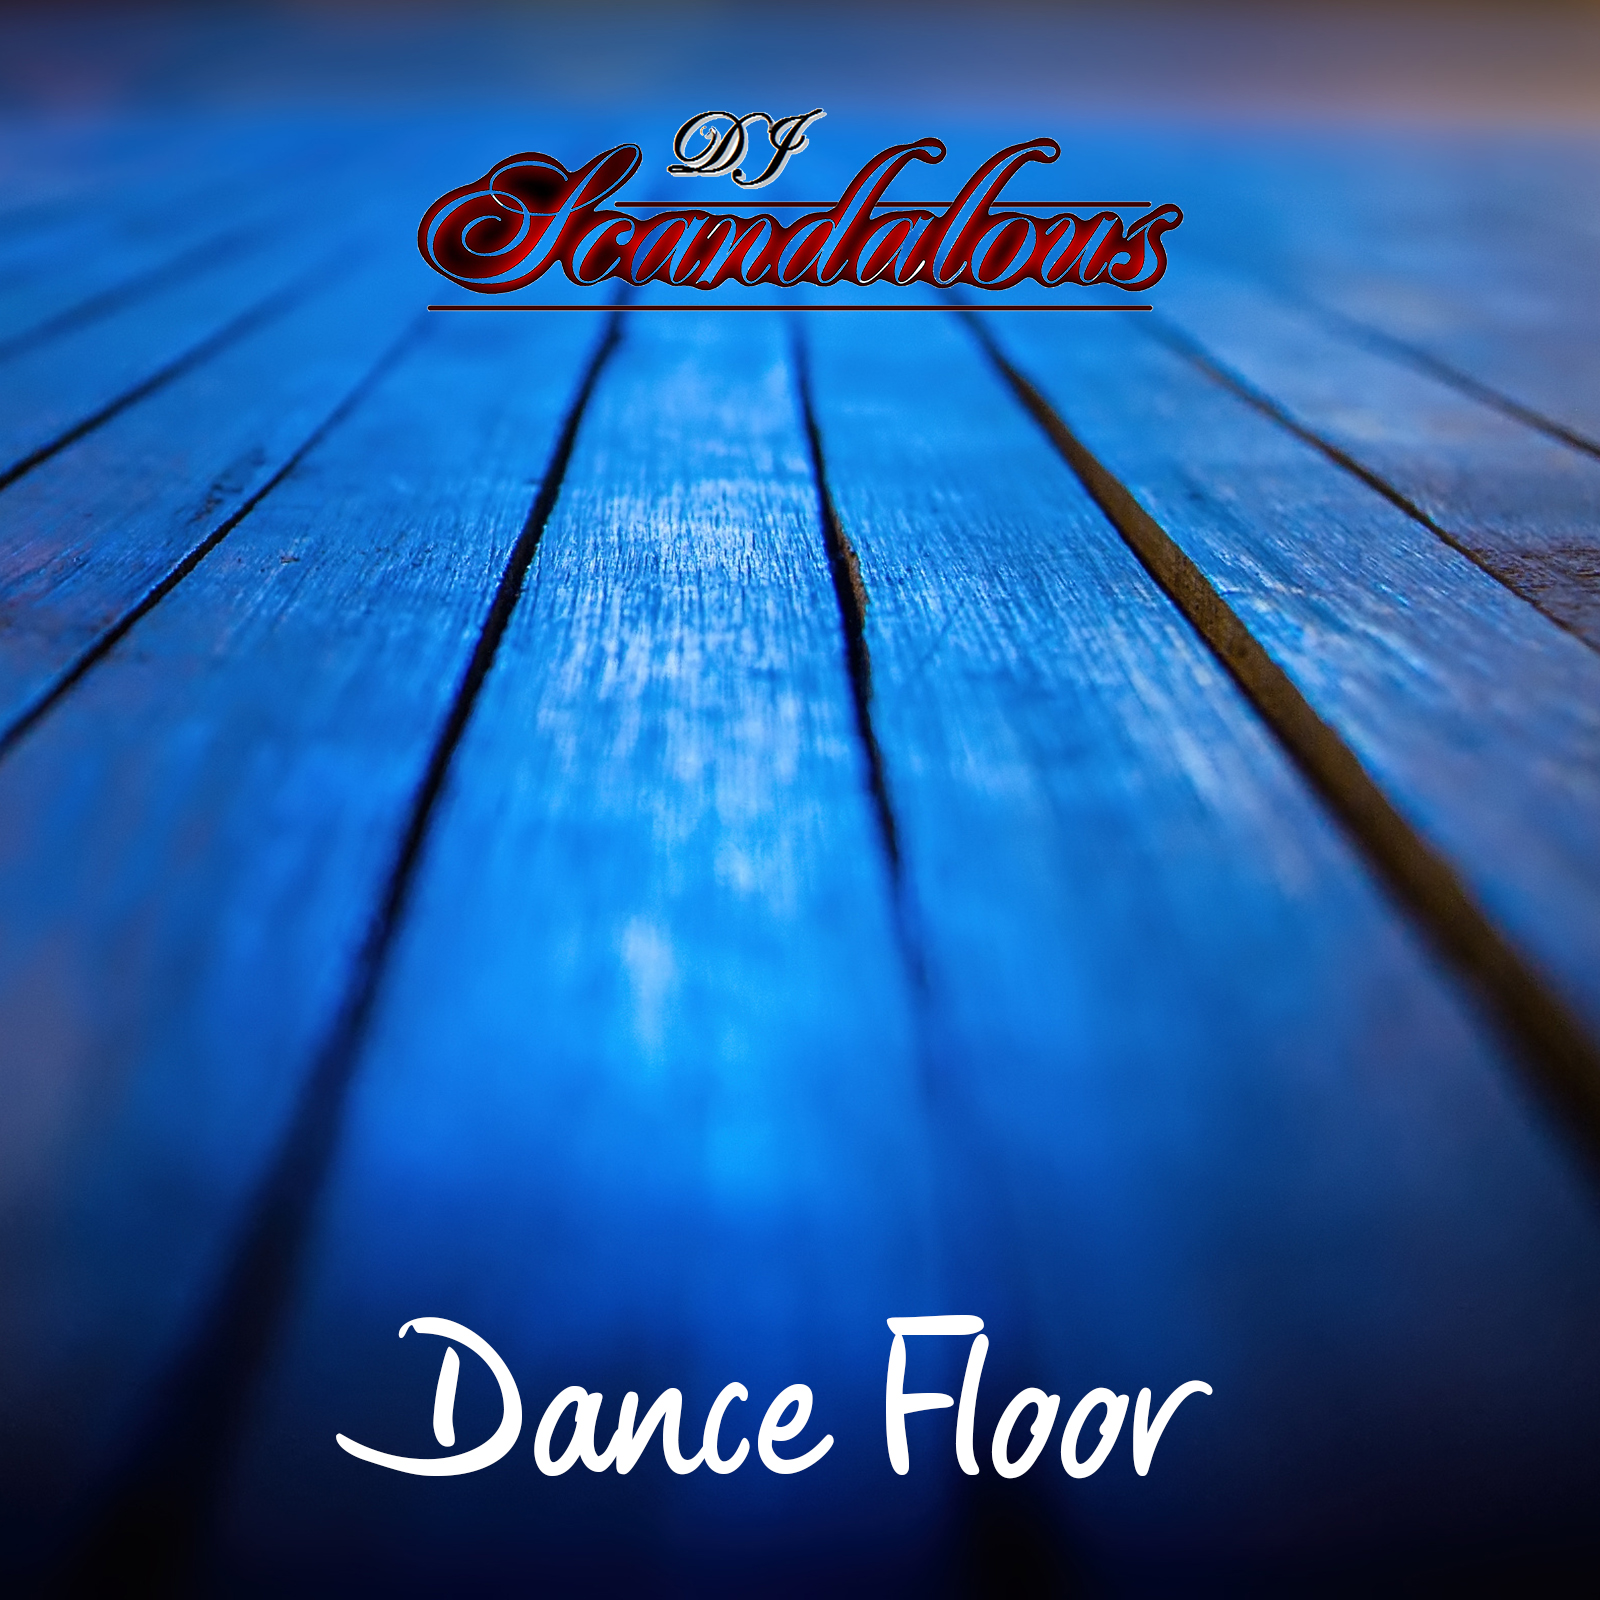 """Dance Floor""(2006) - This was the first single DJ Scandalous ever released to the public. It features production from popular Canadian producer Sonny Black, their first time working together. This single was released January 9, 2006"